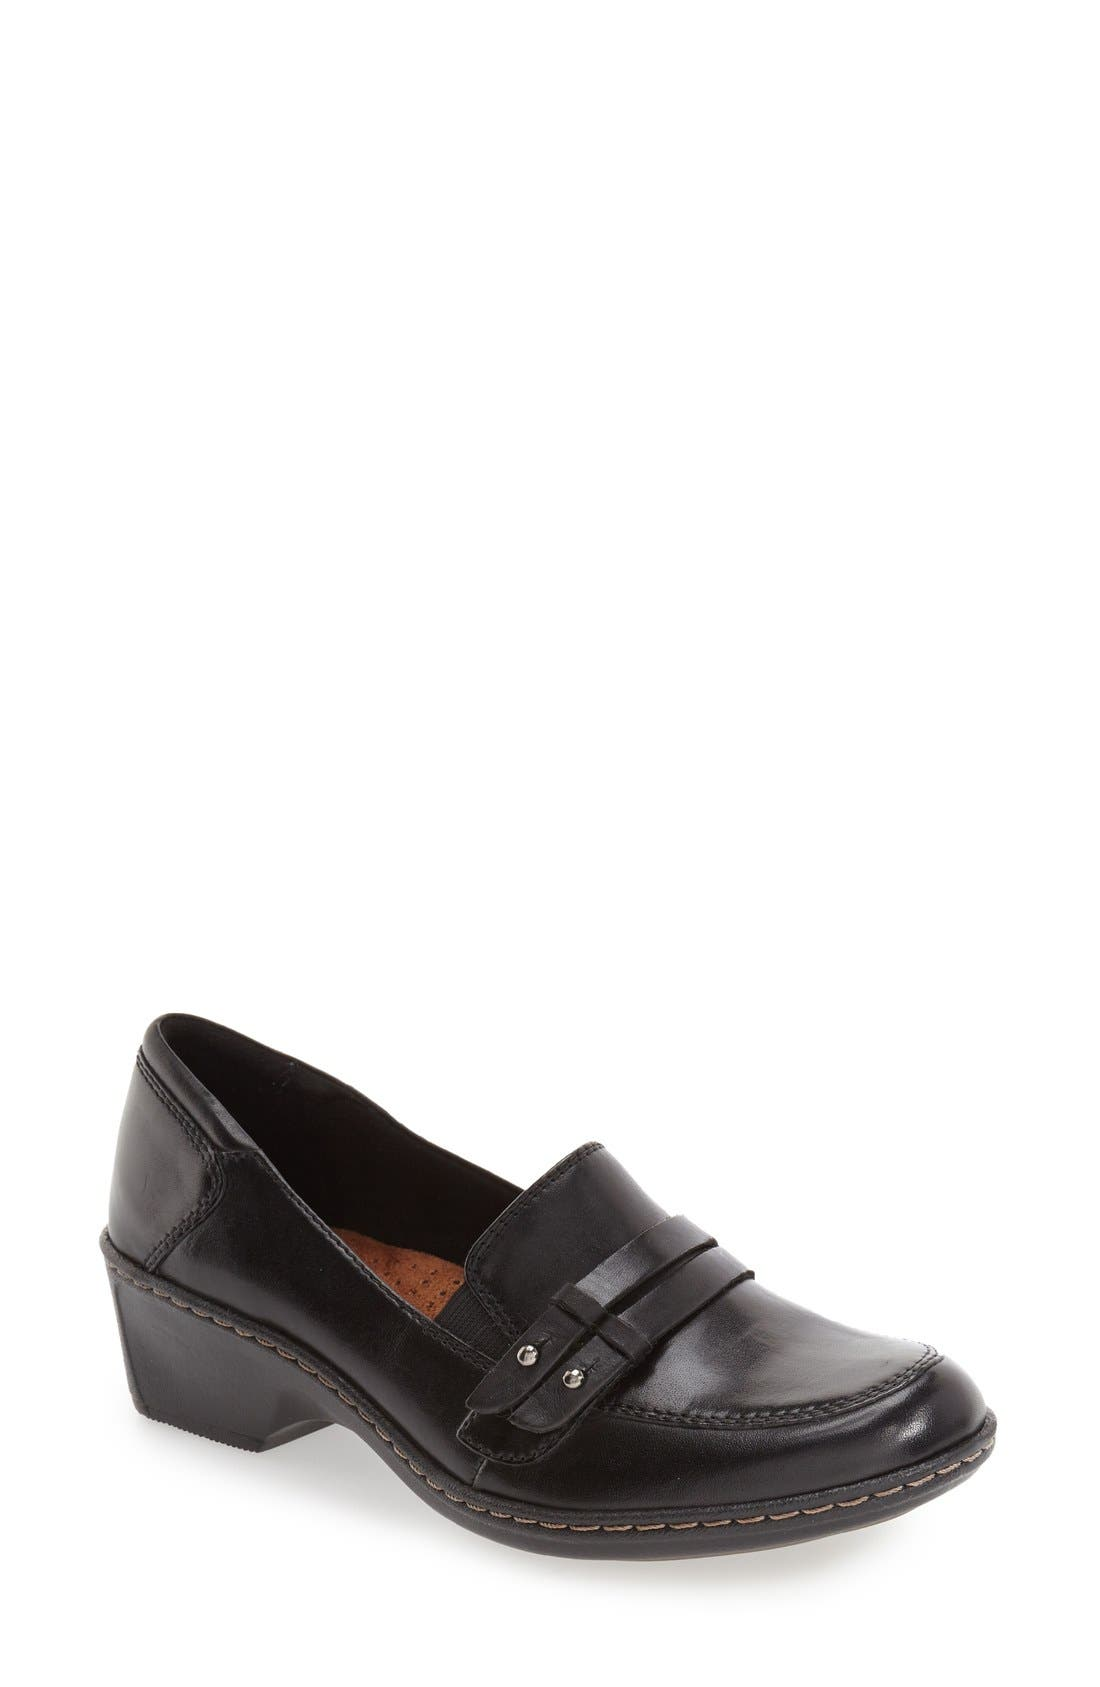 Cobb Hill 'Deidre' Loafer,                         Main,                         color, BLACK LEATHER